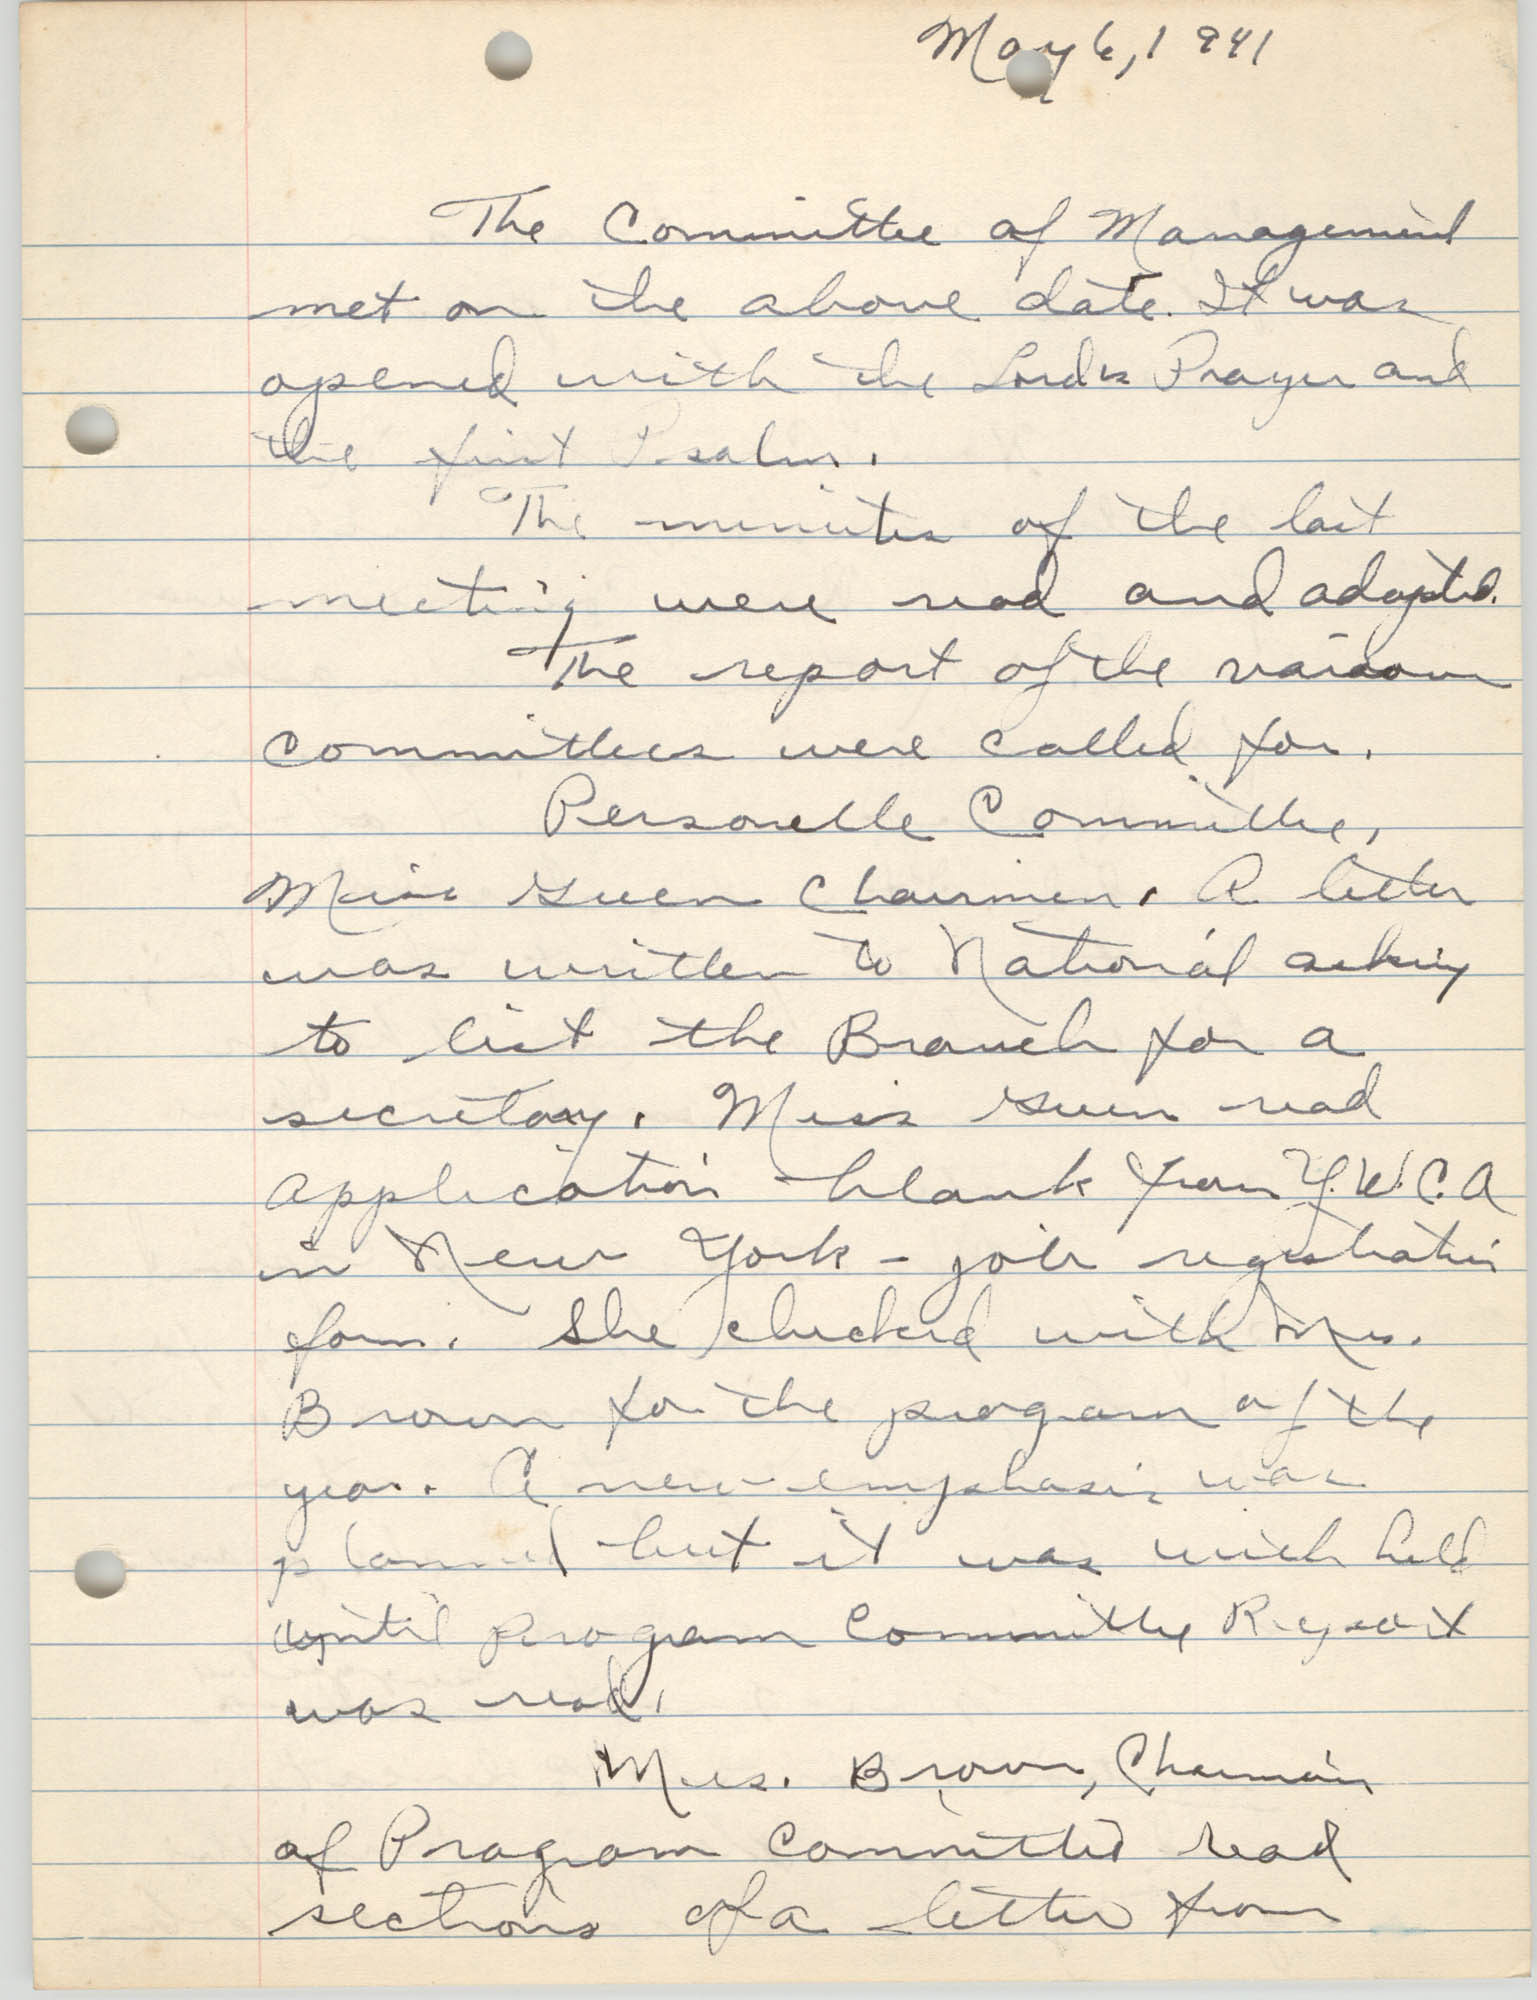 Minutes to the Committee of Management, Coming Street Y.W.C.A., May 6, 1941